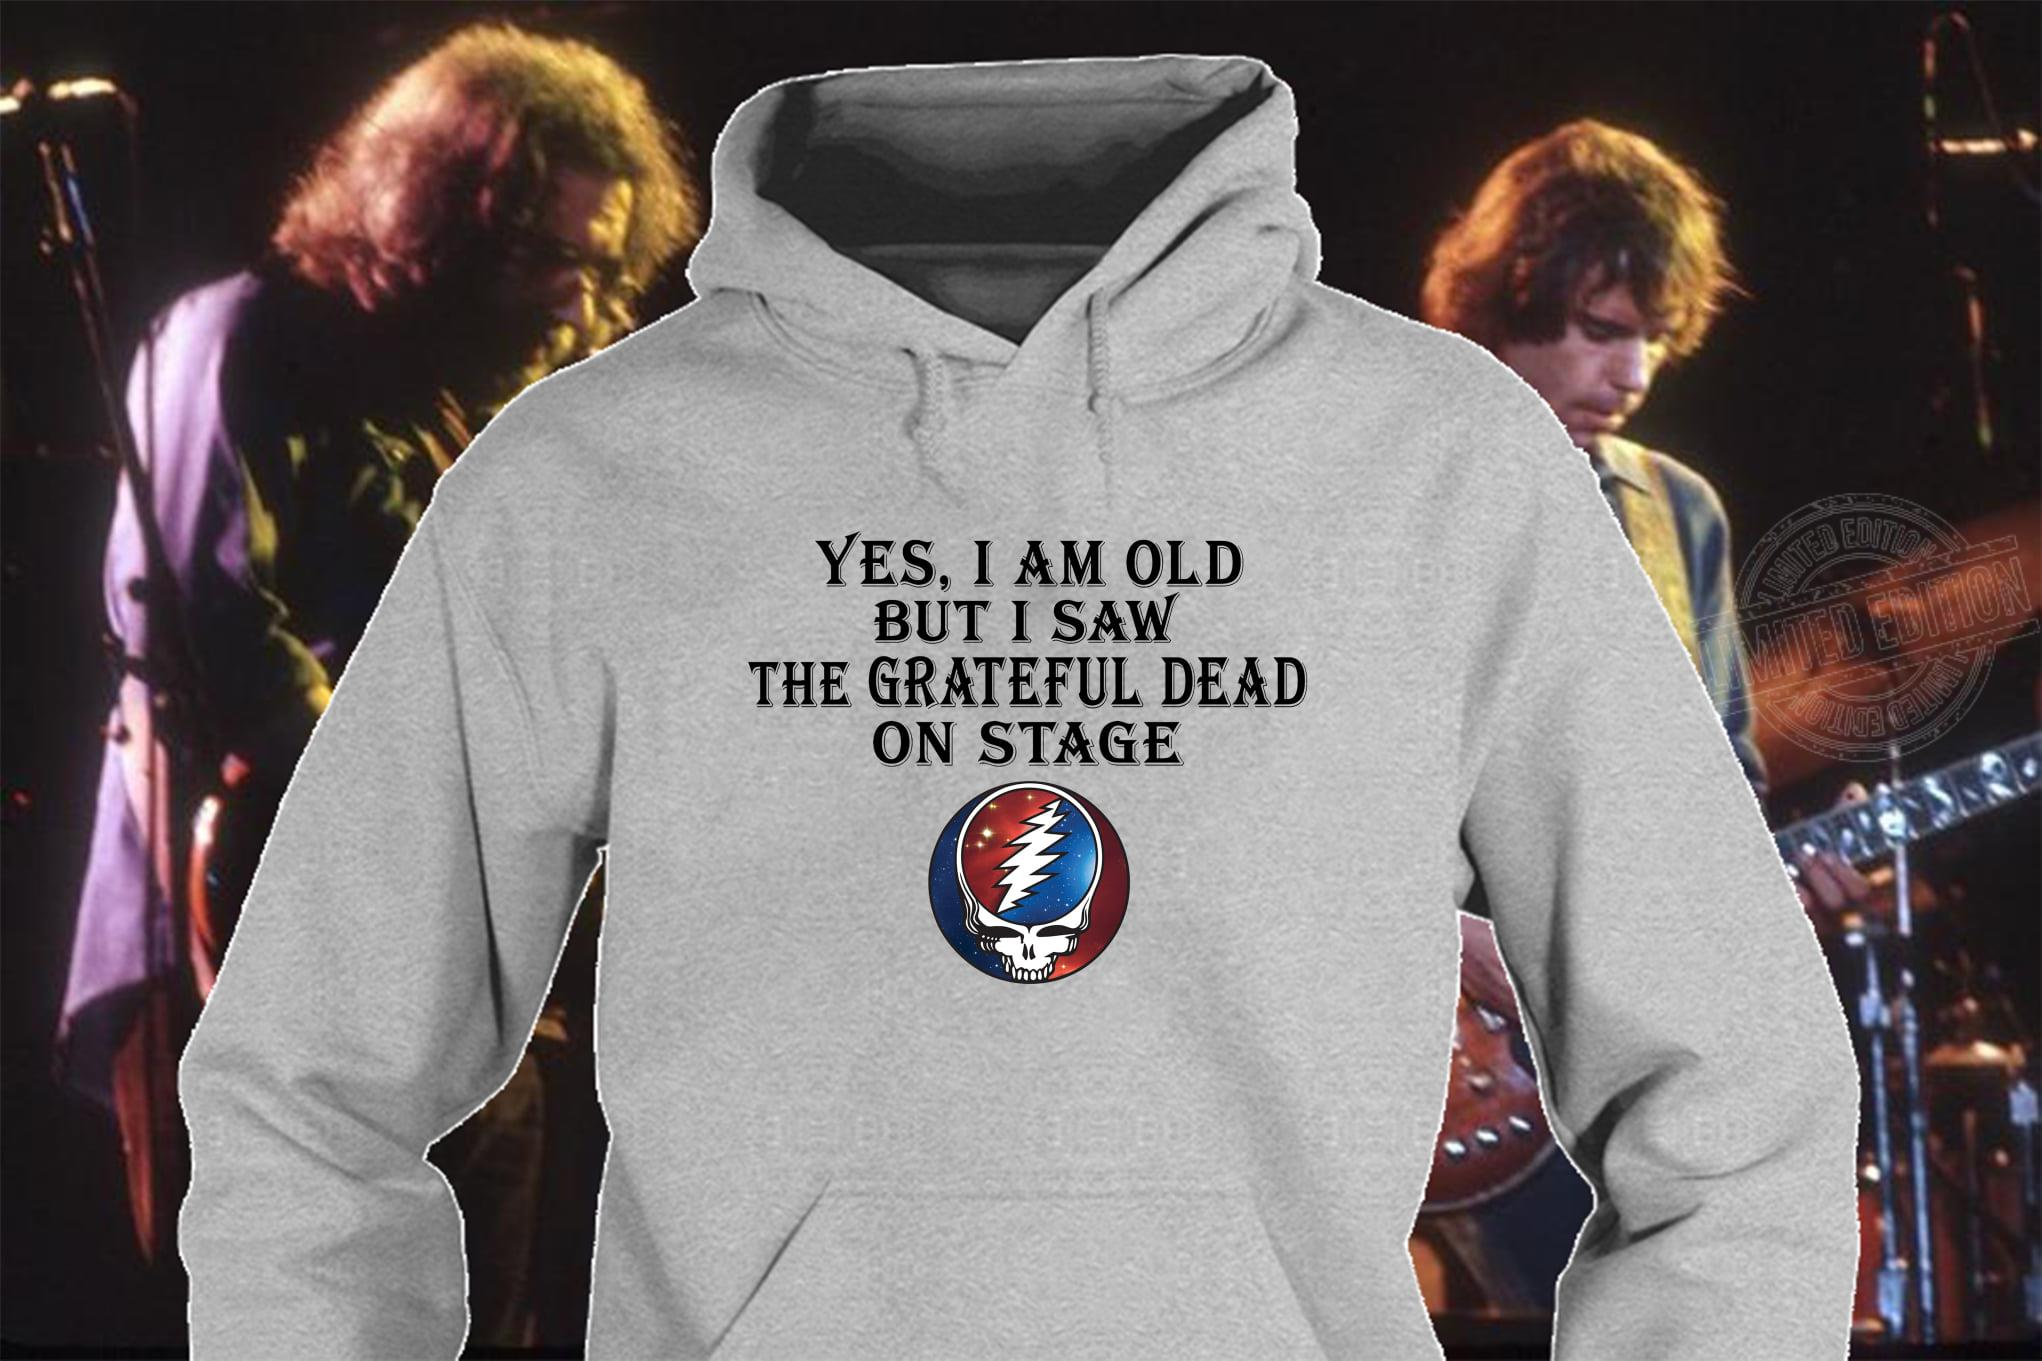 Yes I am old but I saw the grateful dead Shirt